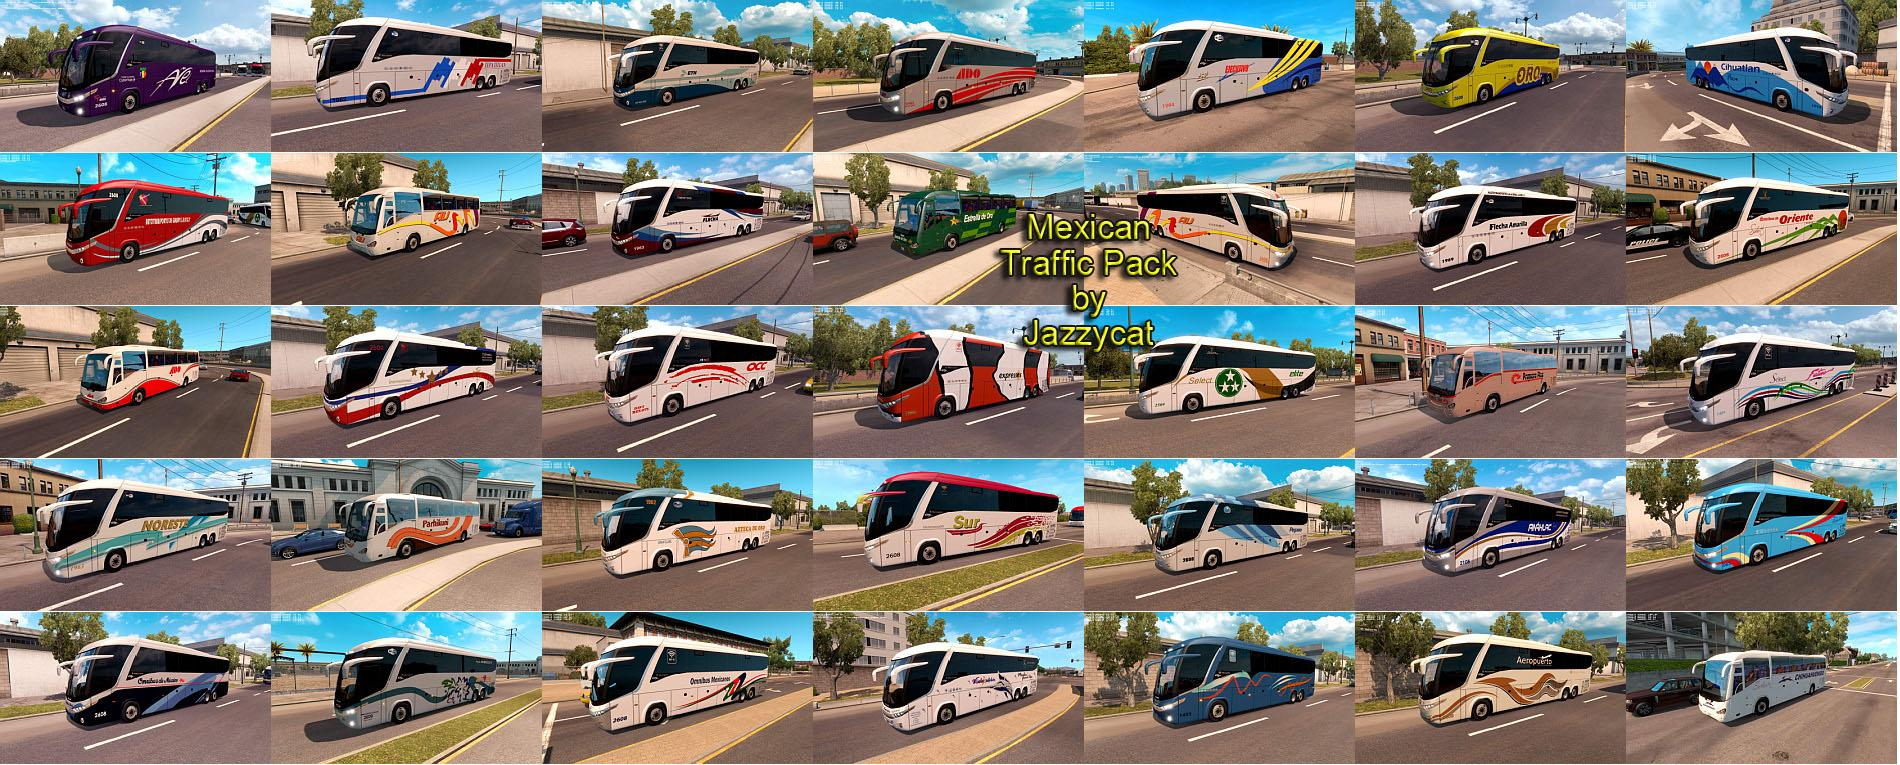 MEXICAN TRAFFIC PACK BY JAZZYCAT V1 2 Mod - ATS mod